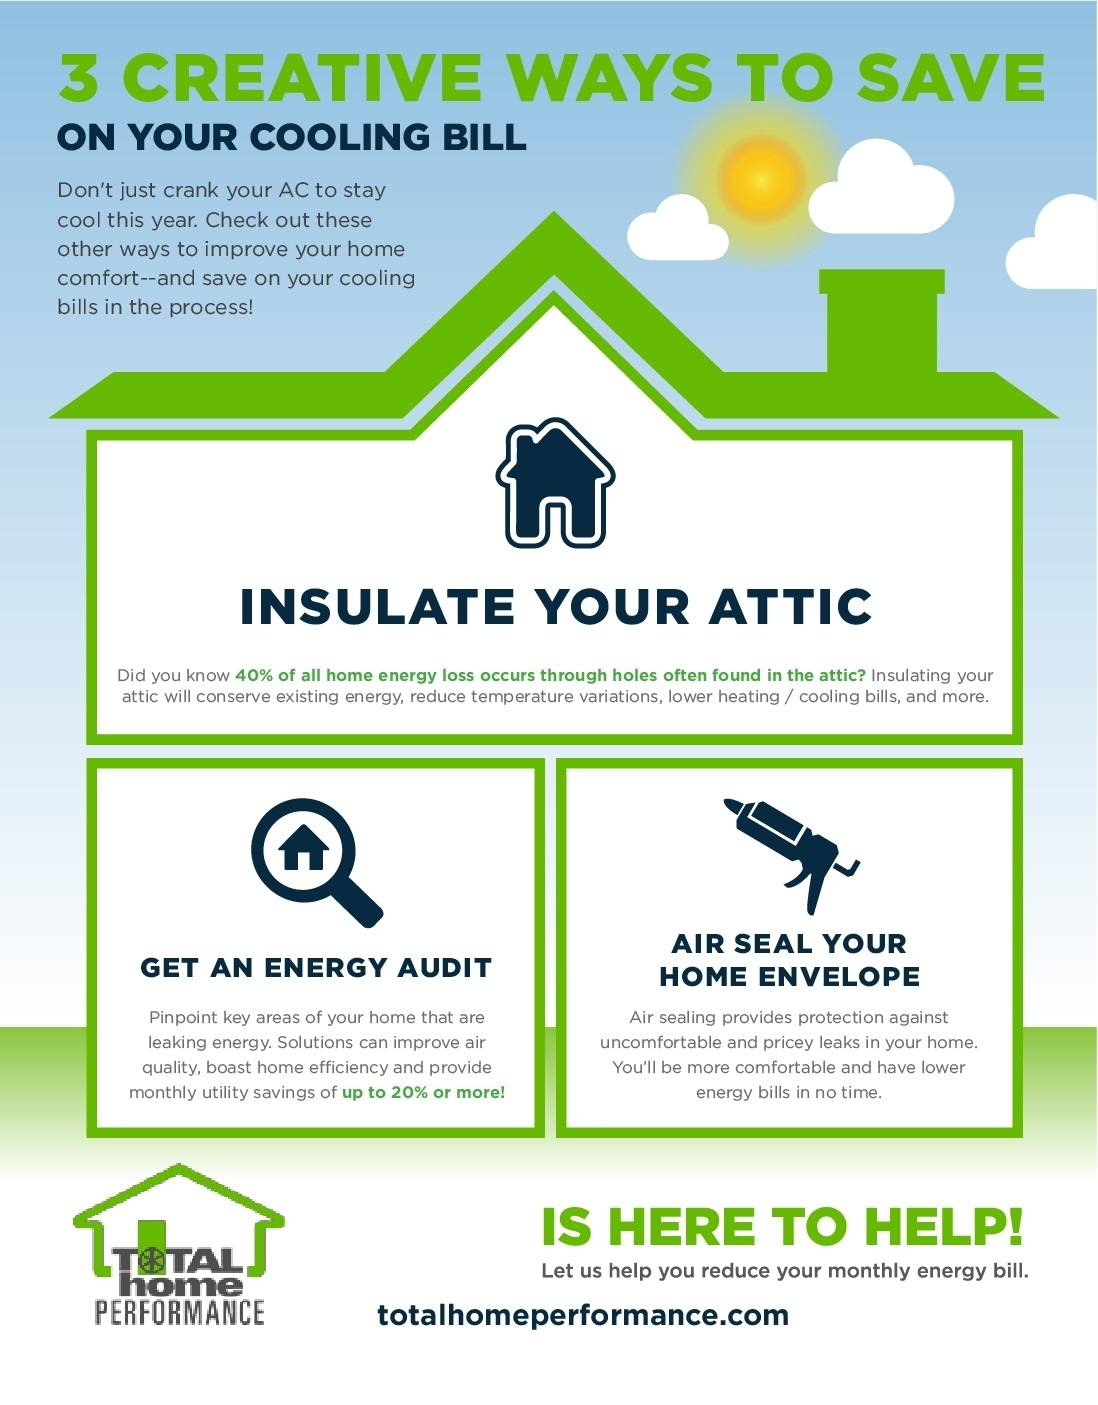 energy audit, air sealing, total home performance, md